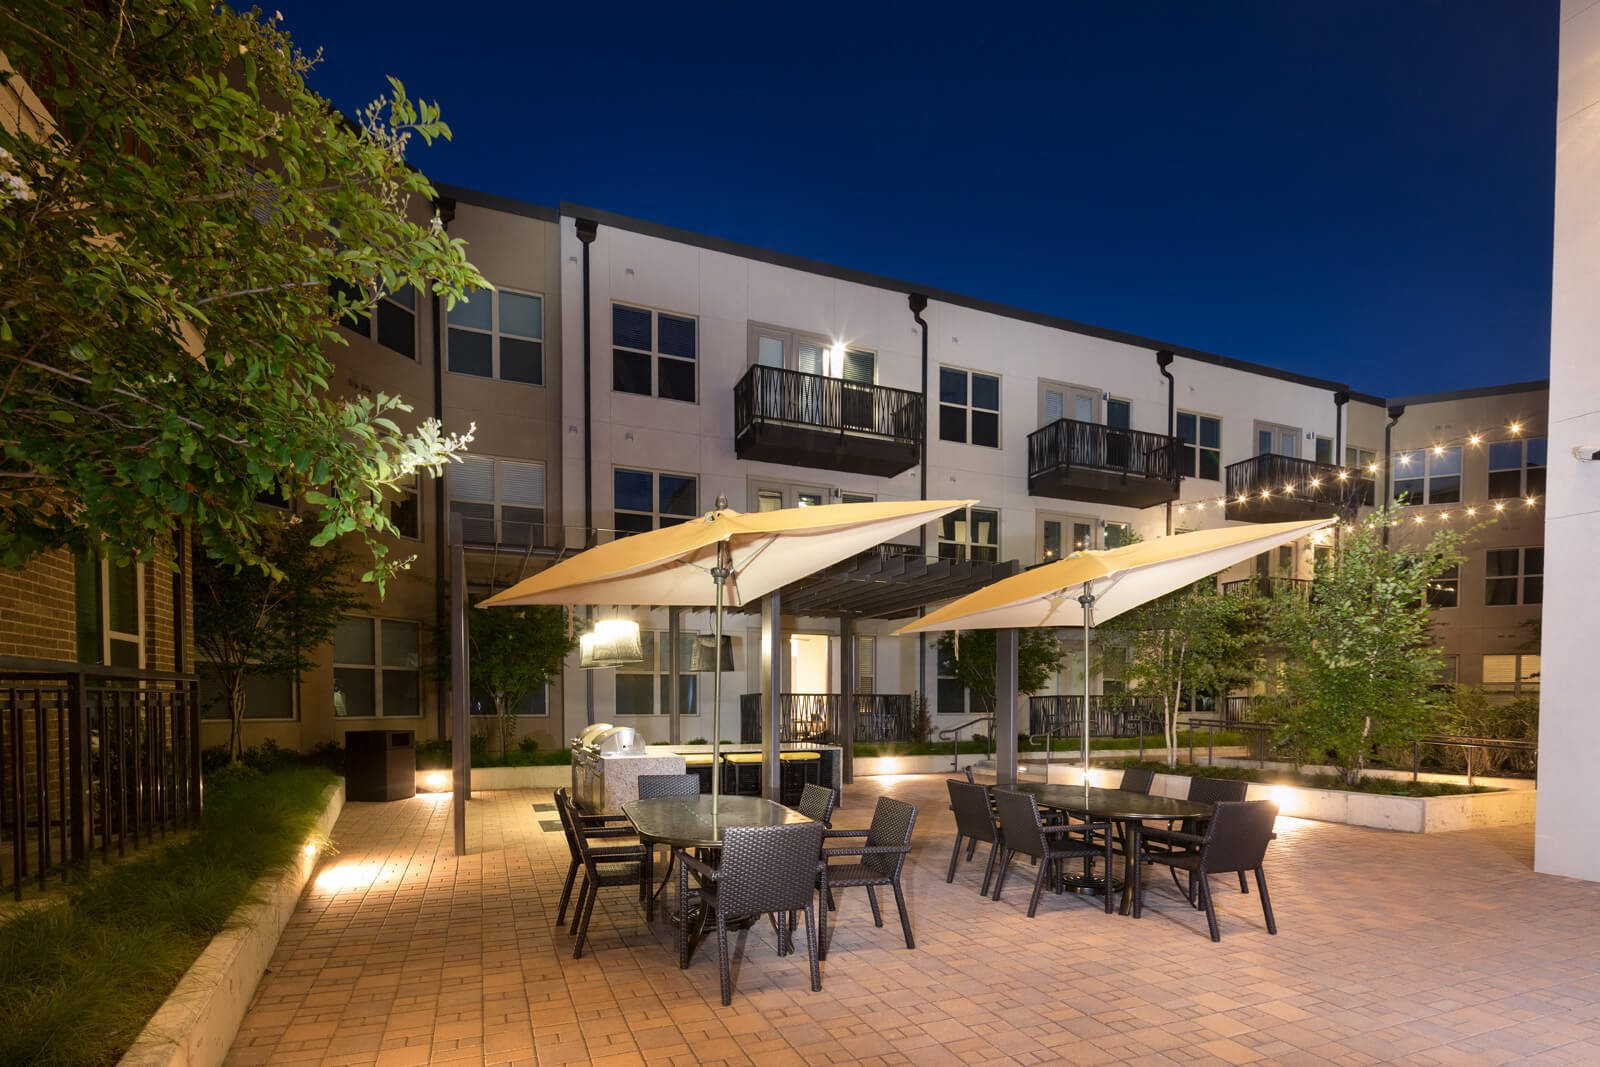 Dine under the stars at Windsor West Lemmon, 75209, TX